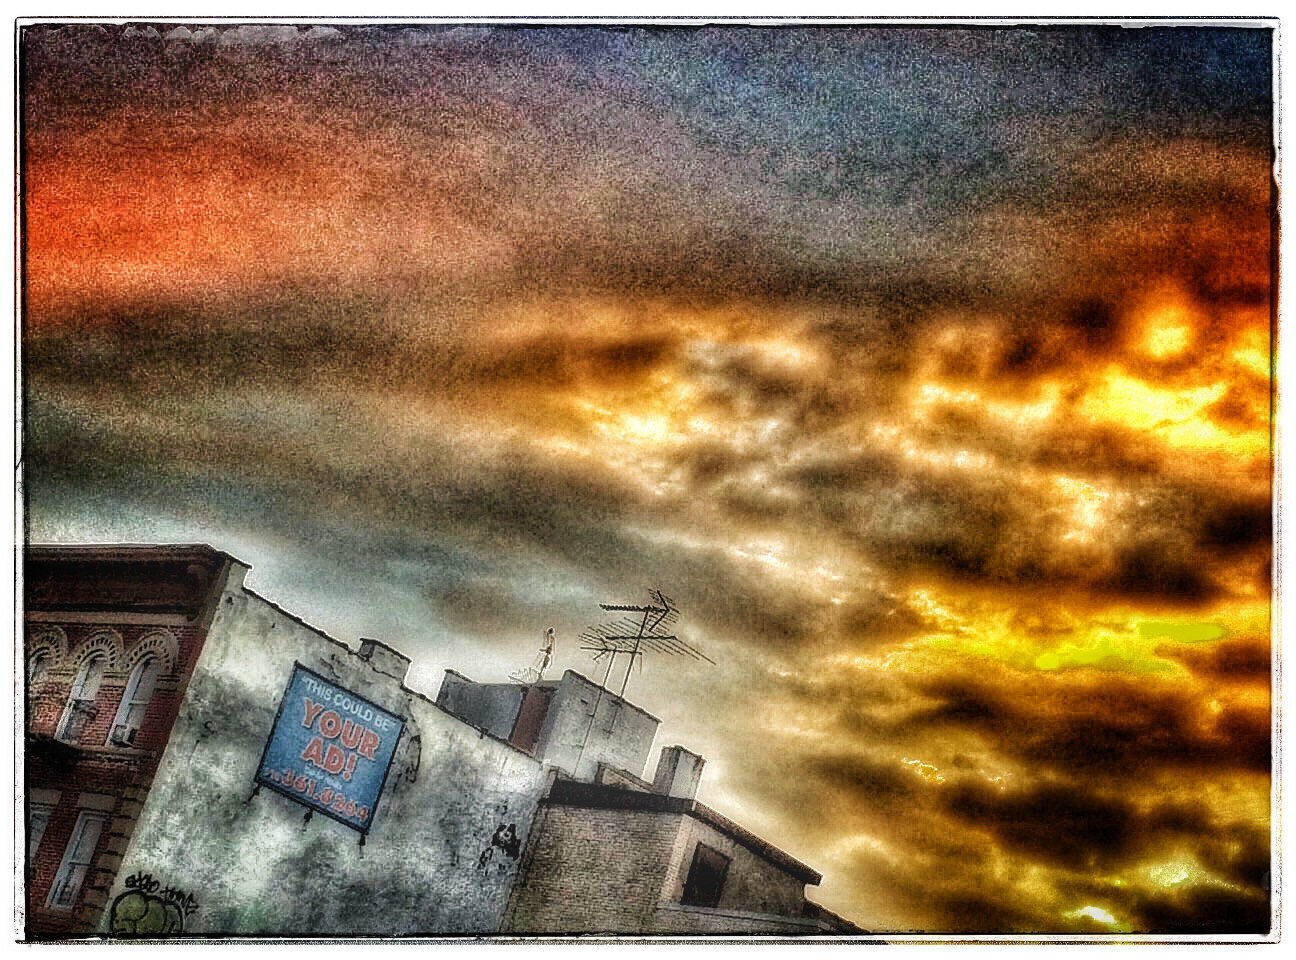 iPhoneography Workshop